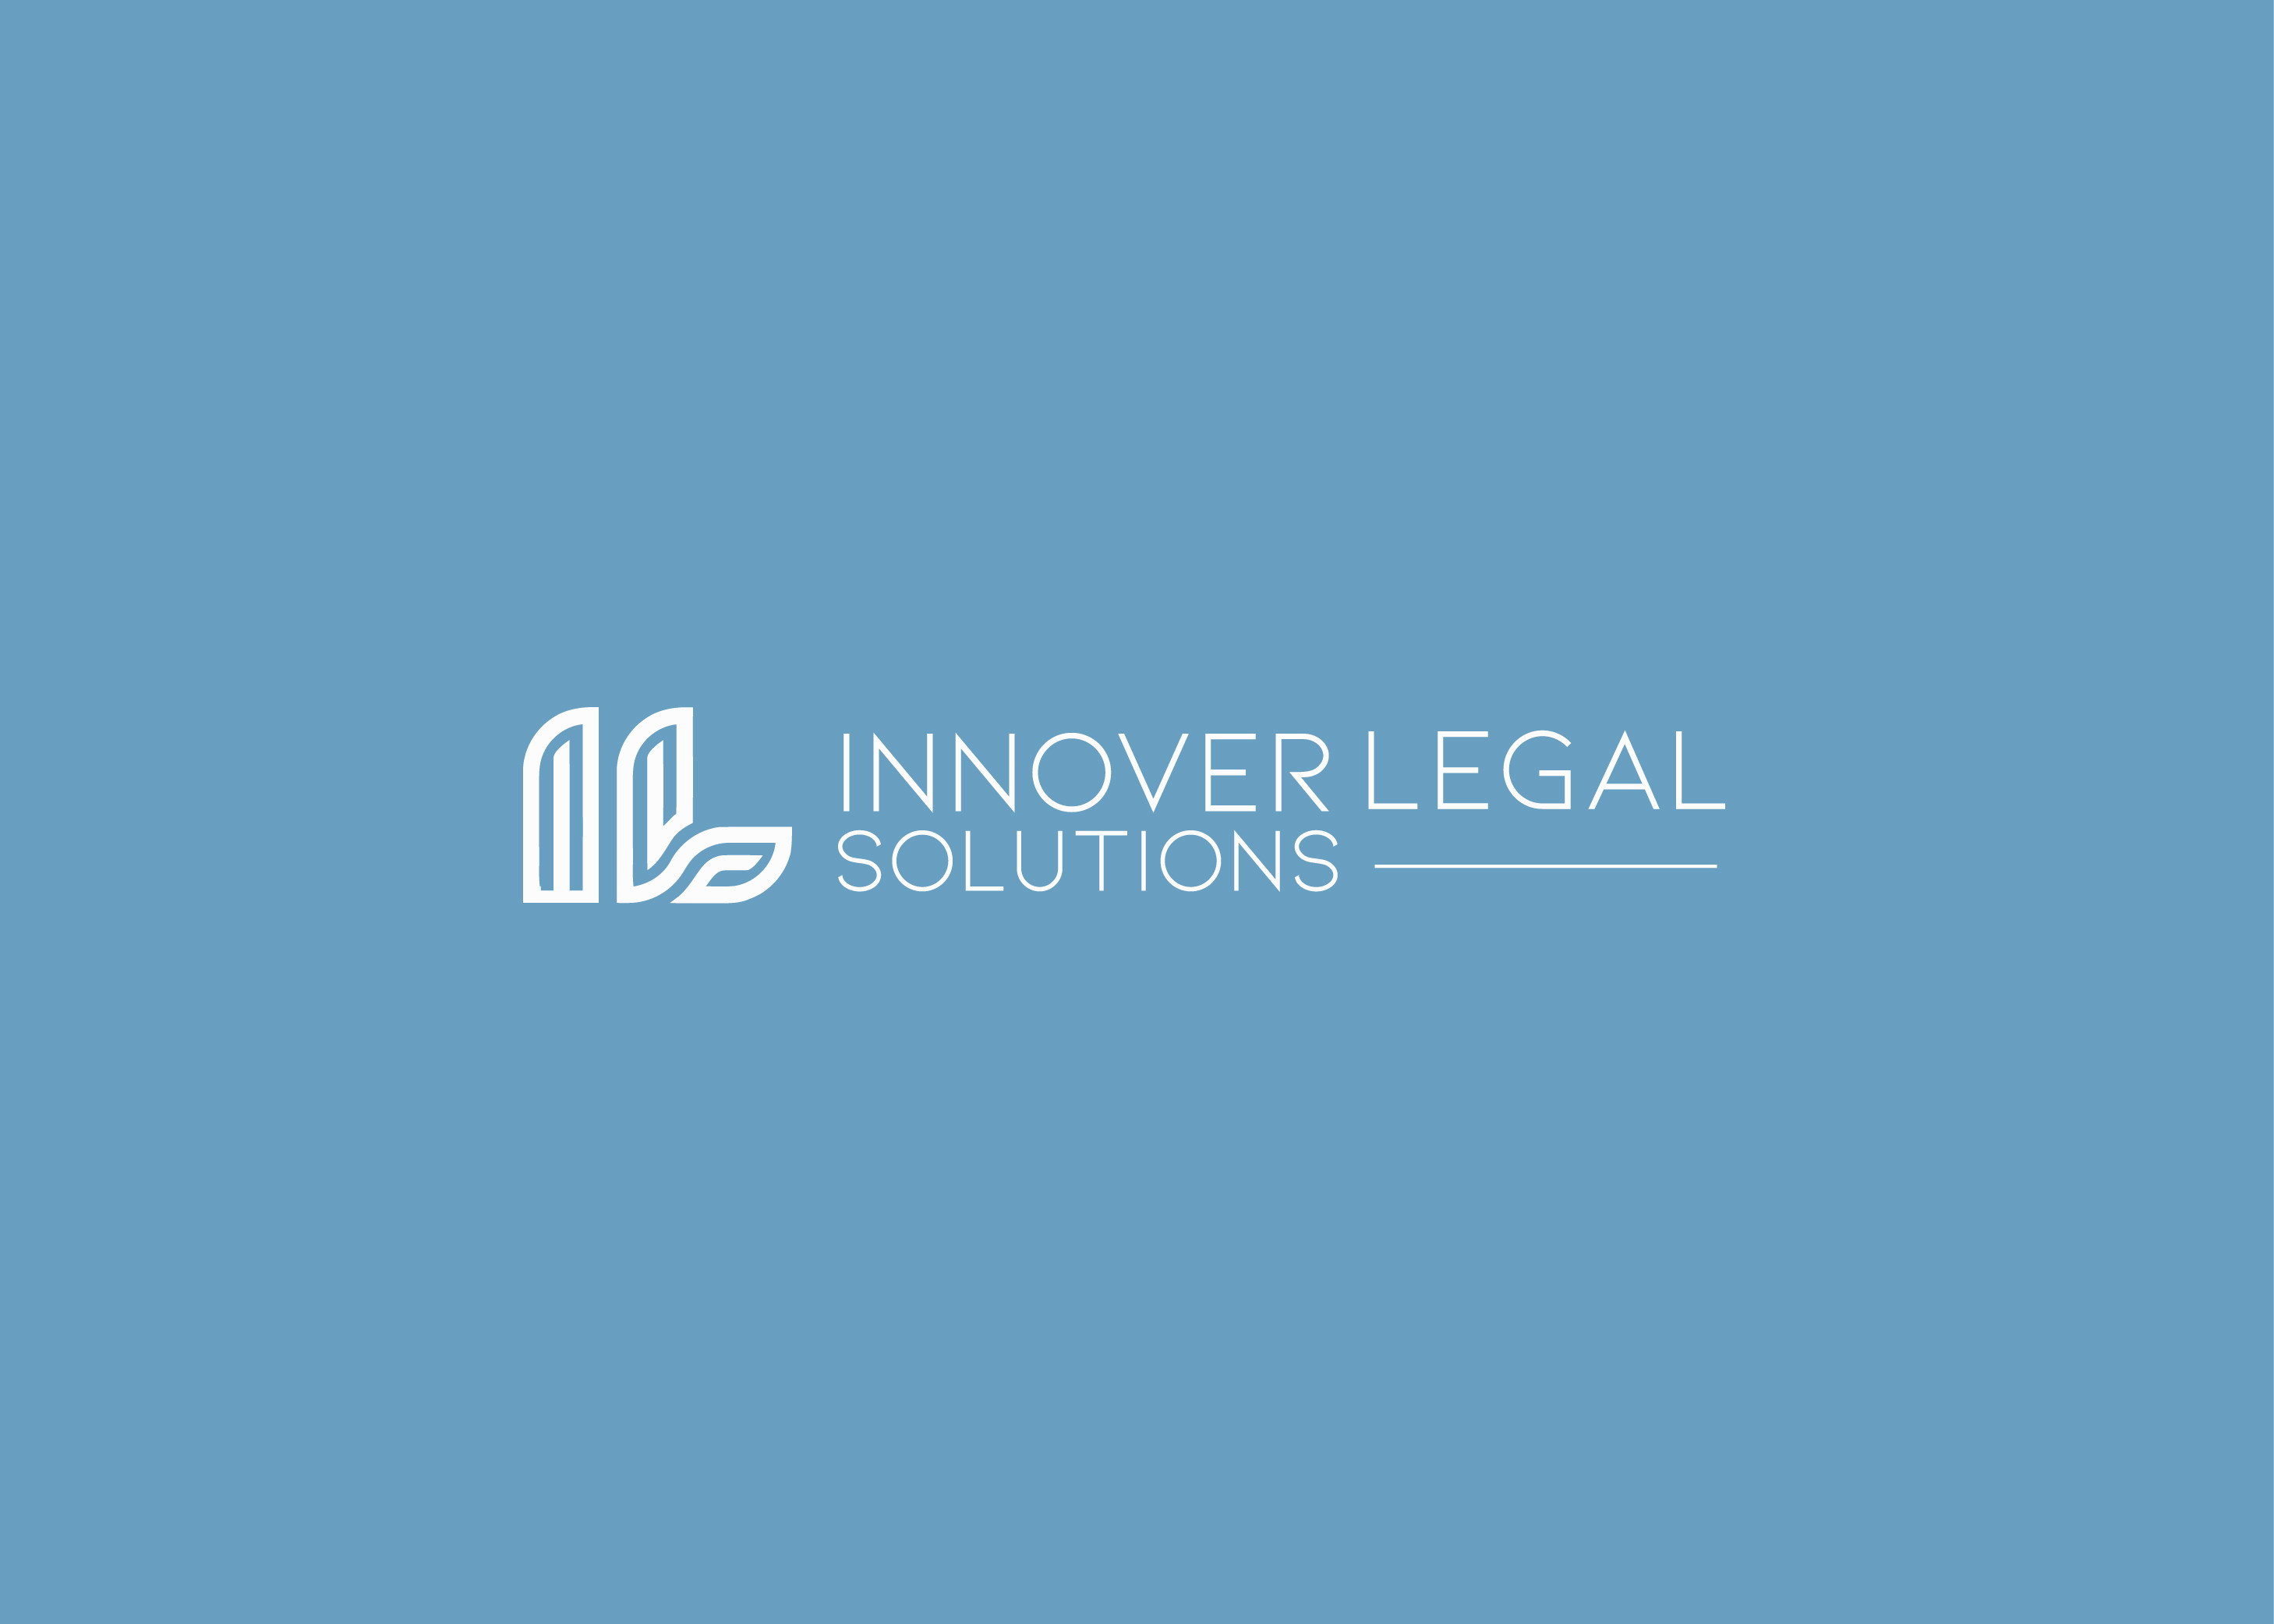 Innover Legal Solutions